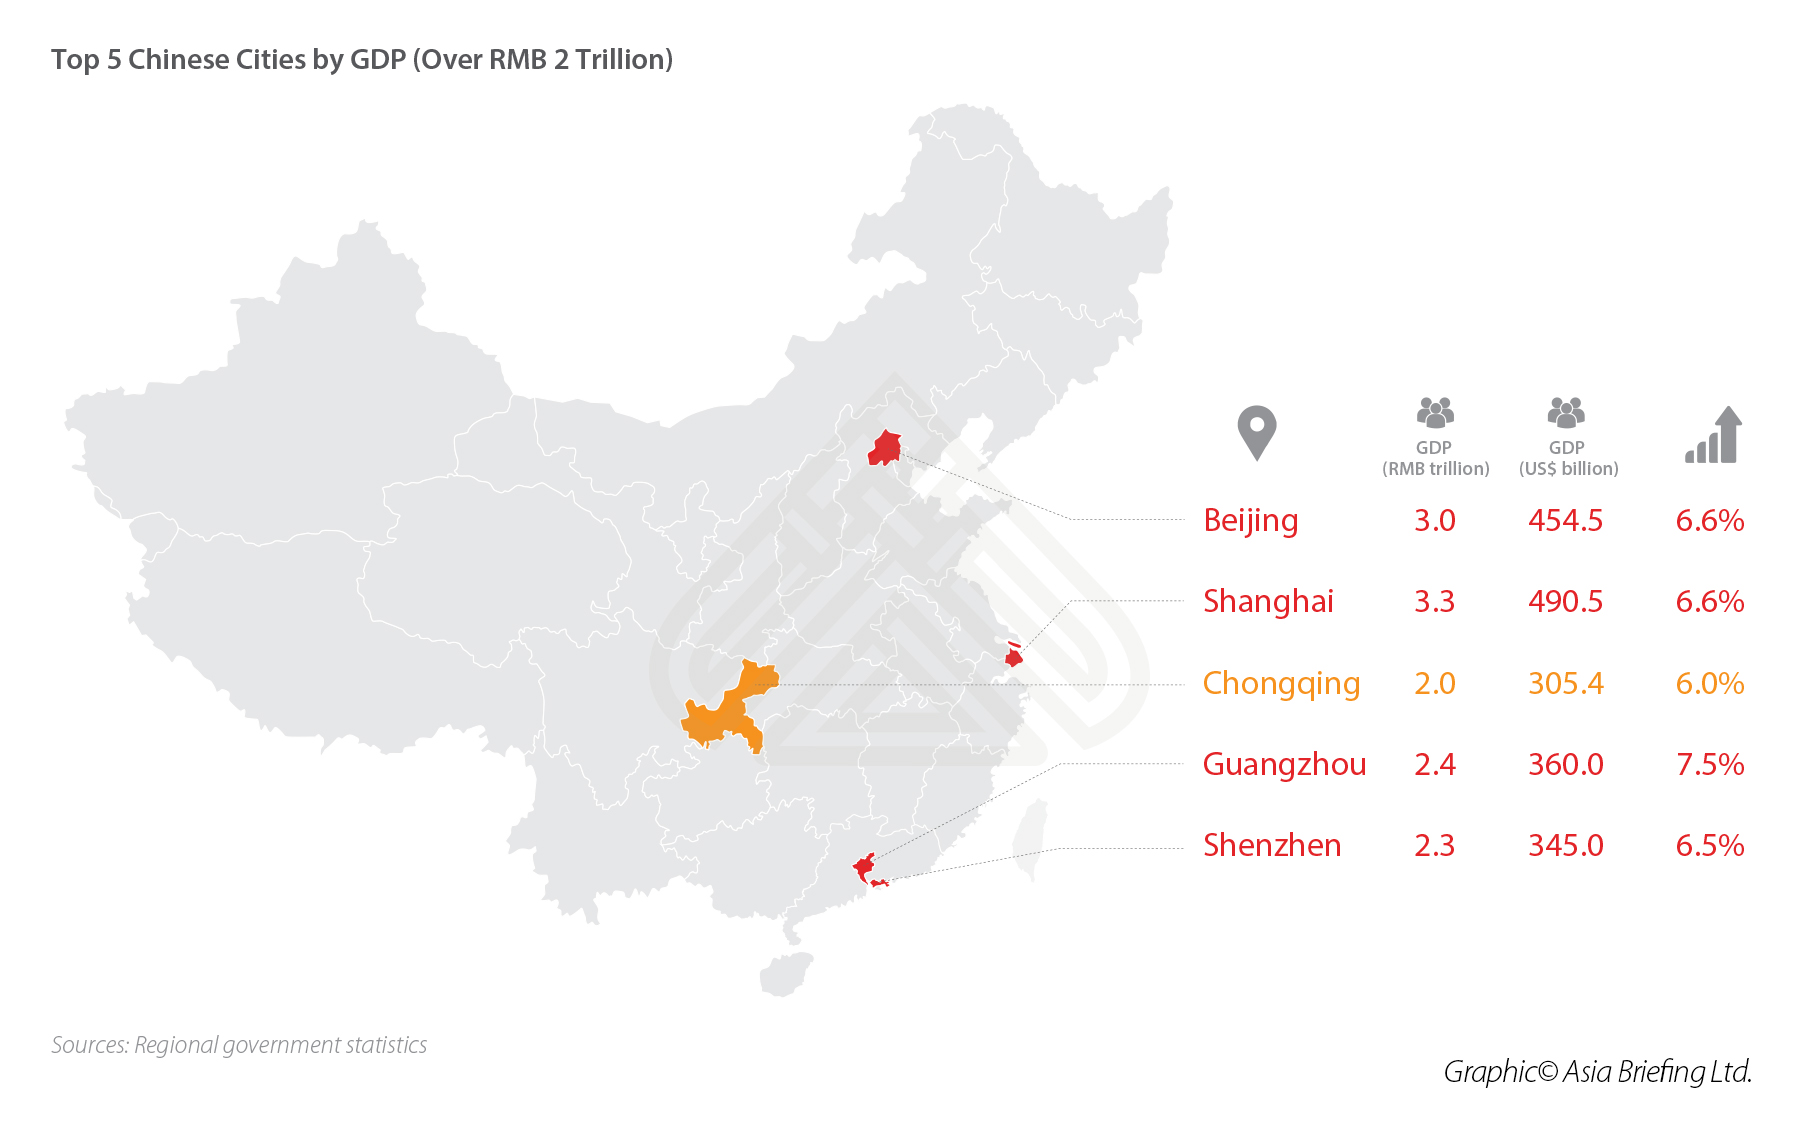 china-top-5-cities-GDP